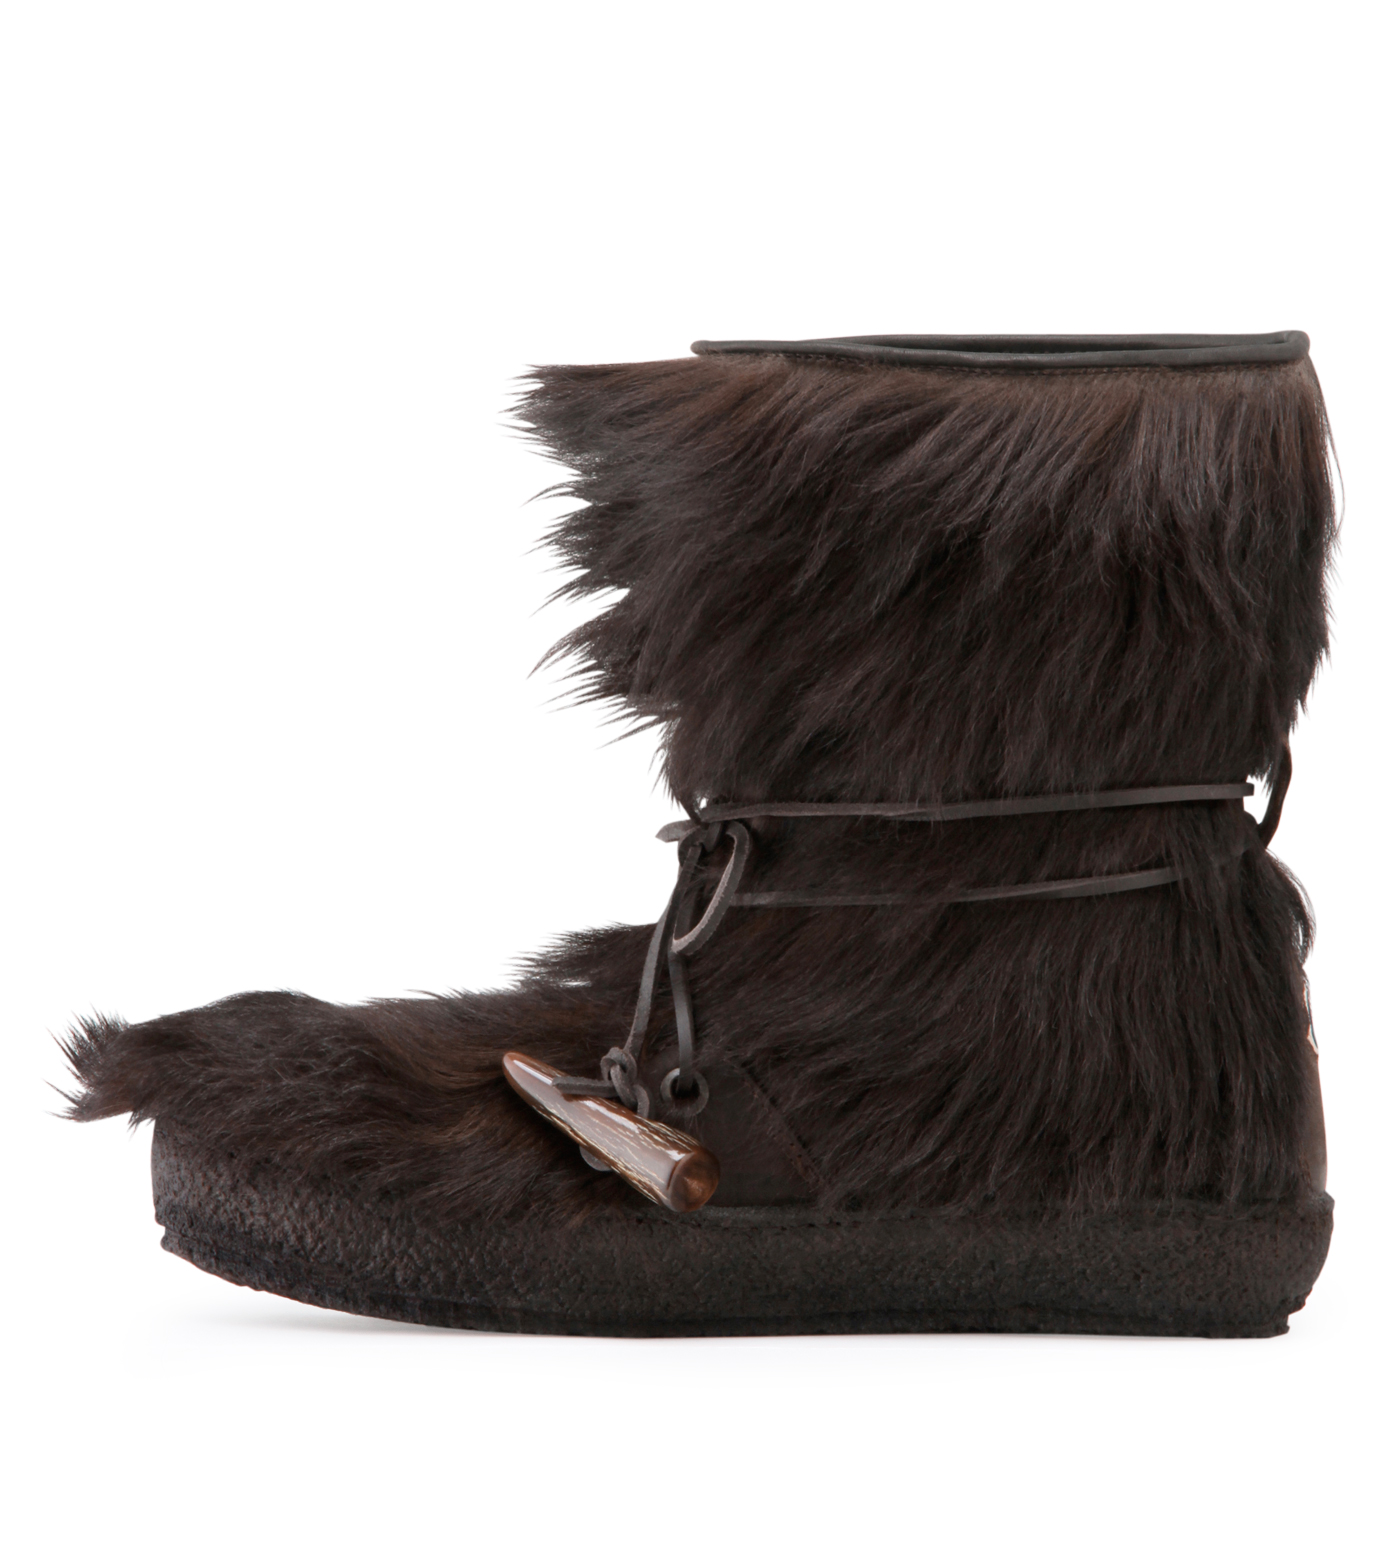 Moncler Gamme Bleu(モンクレールガムブルー)のBoots-BROWN-O0446-30-42 拡大詳細画像2